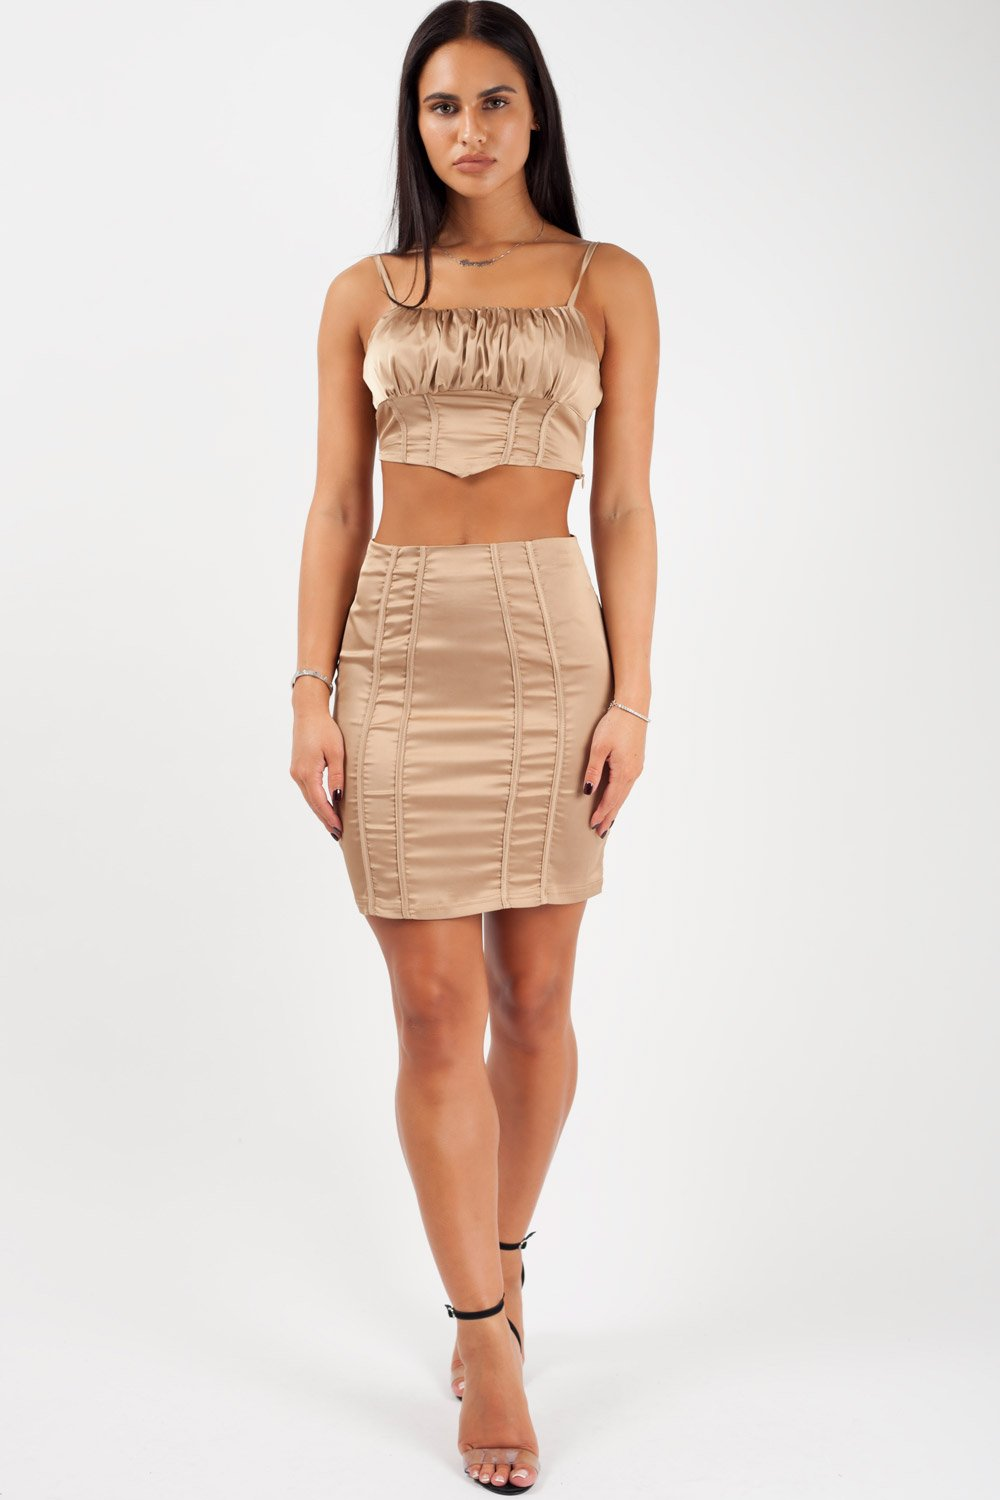 gold crop top and skirt set styledup fashion